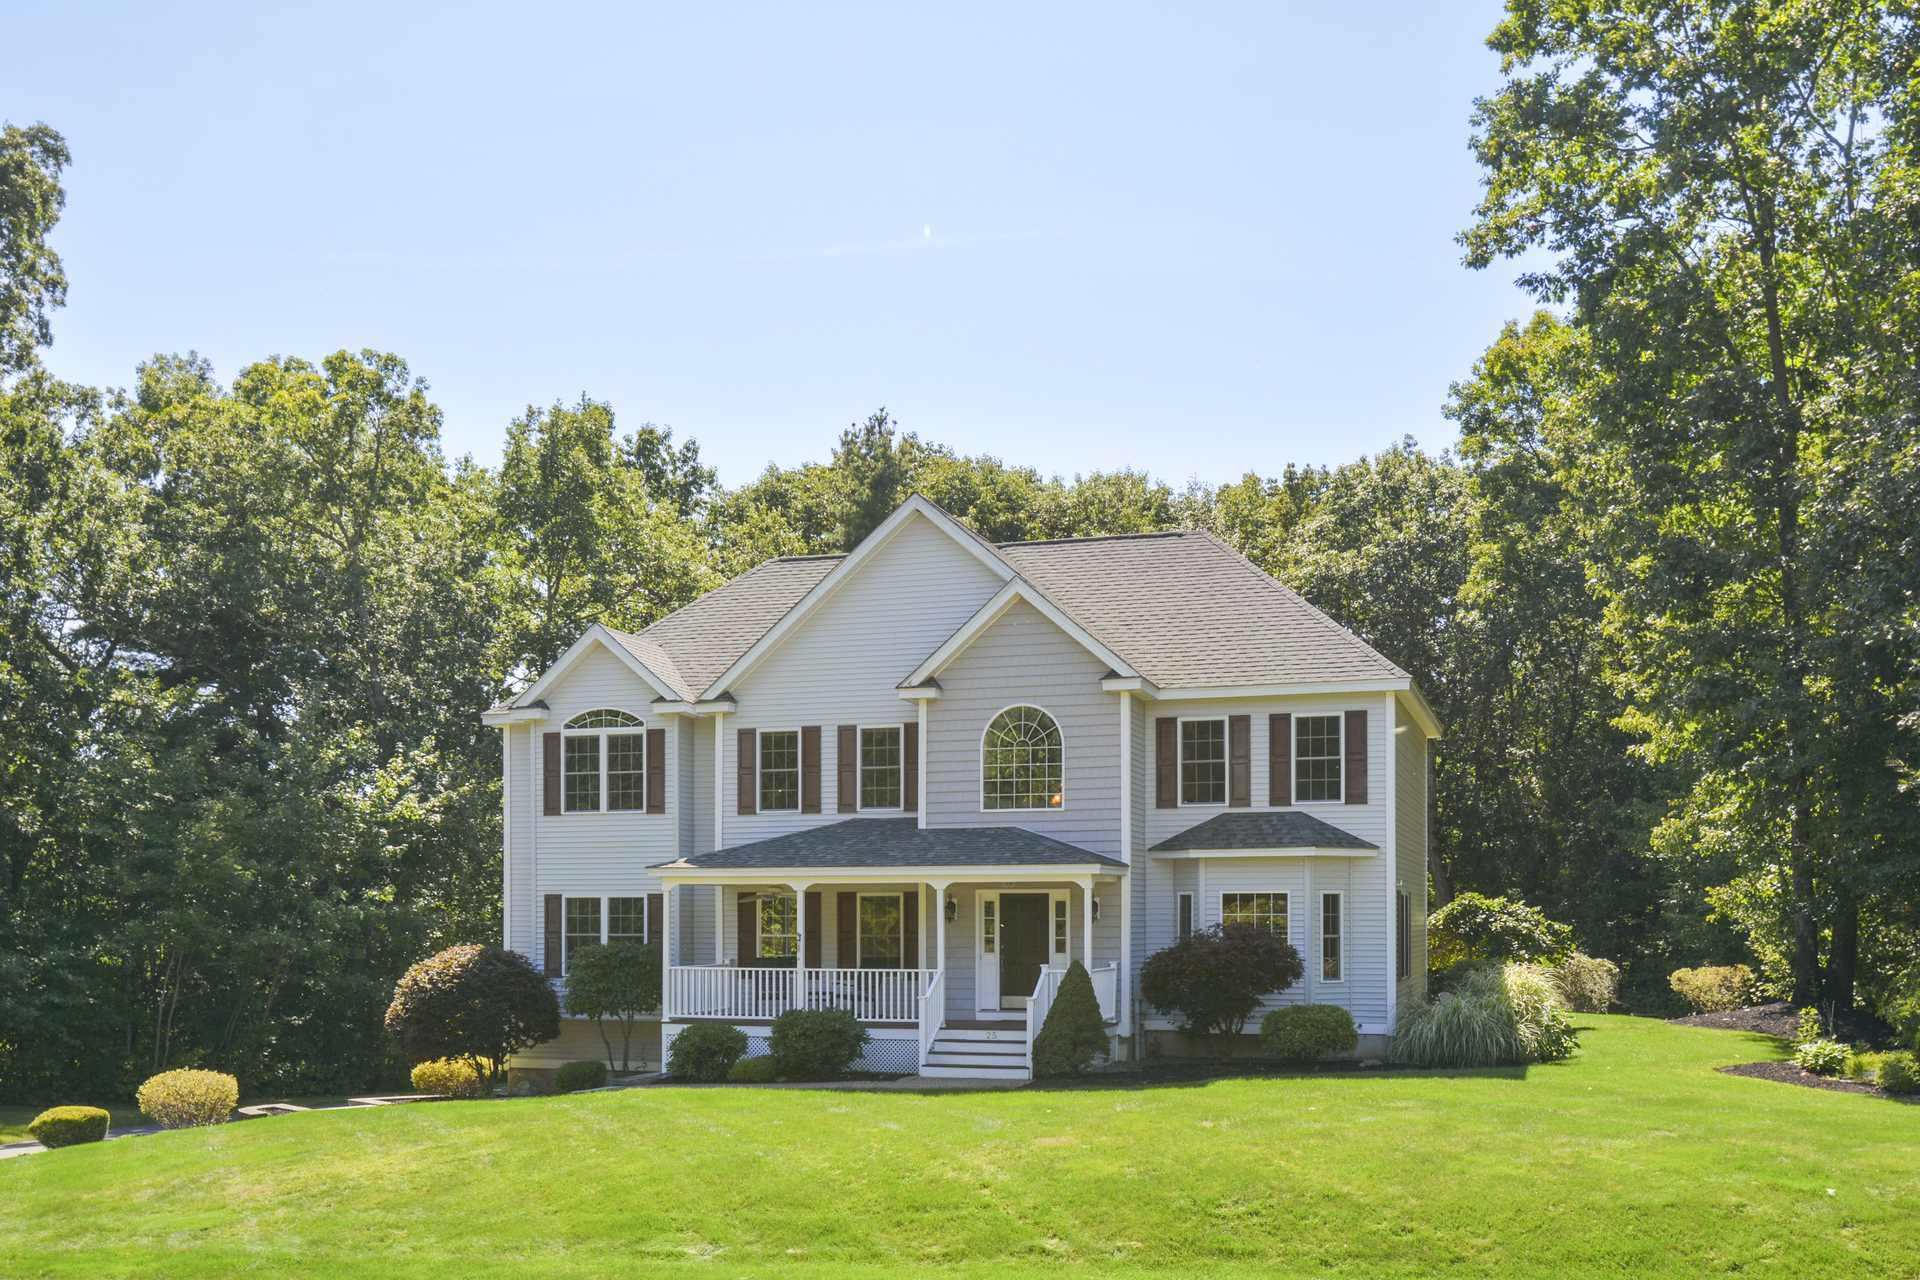 Photo of 25 Cardiff Road Windham NH 03087